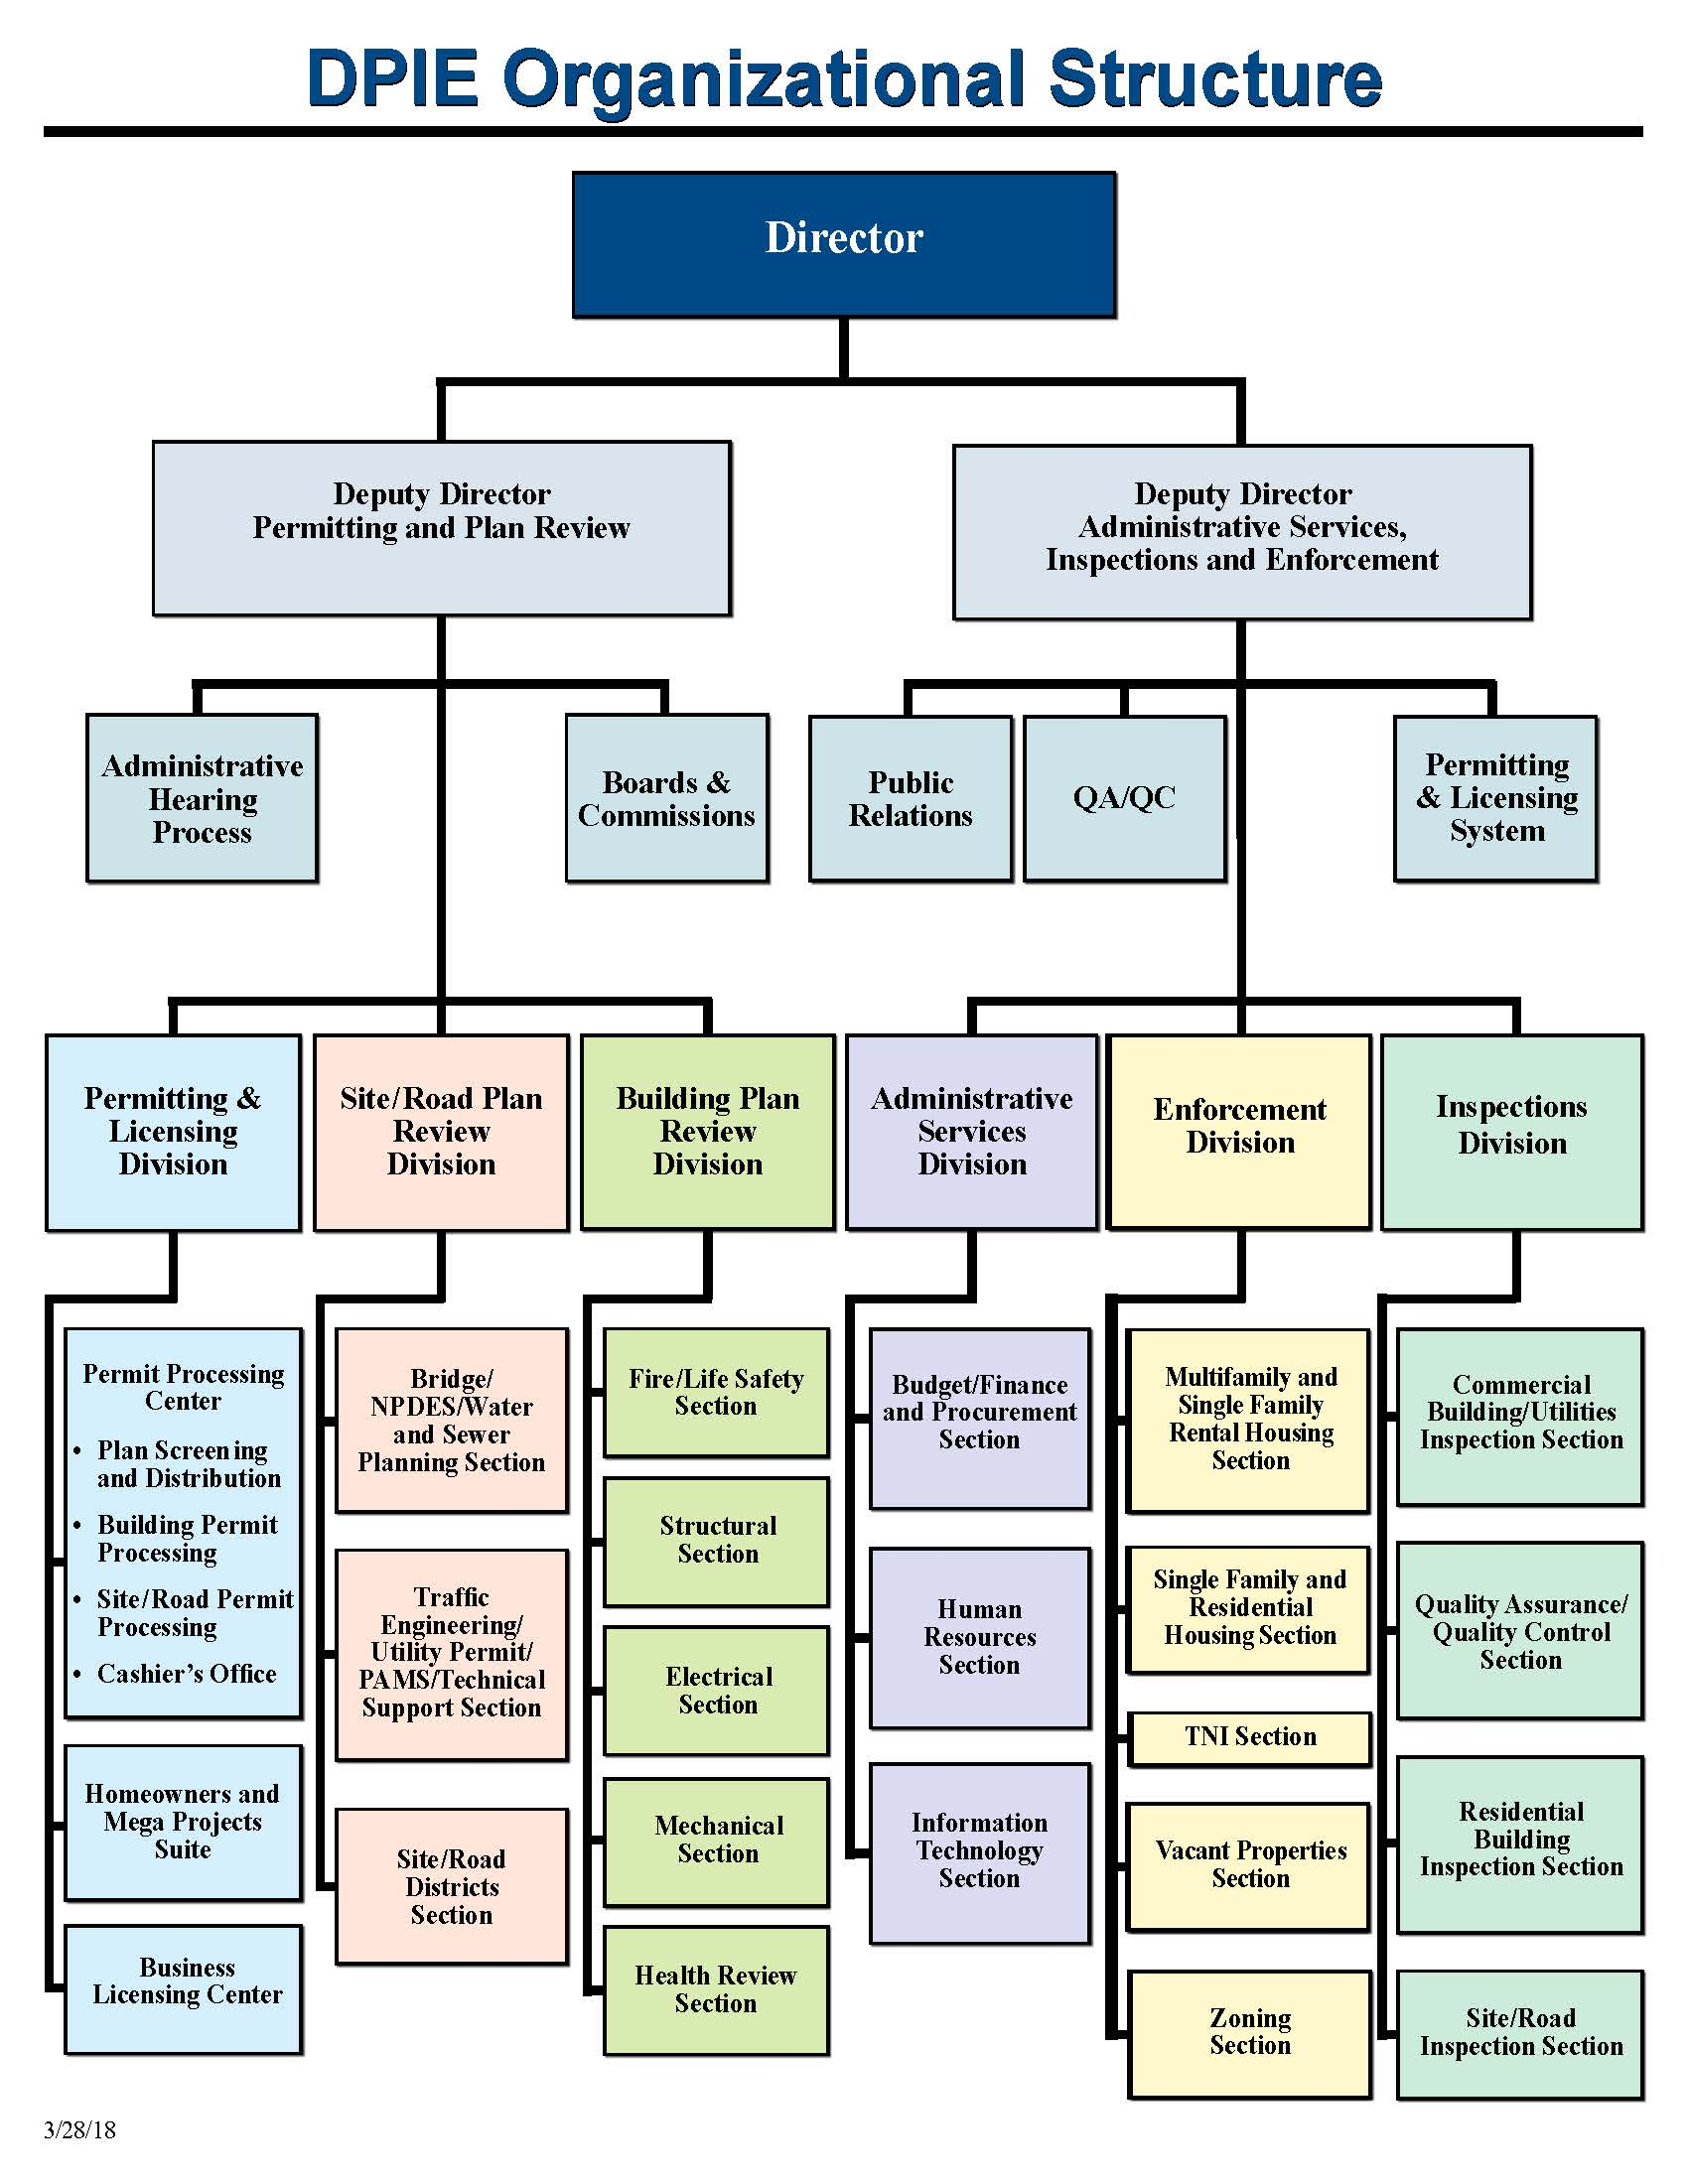 Departmental Organizational Chart for DPIE